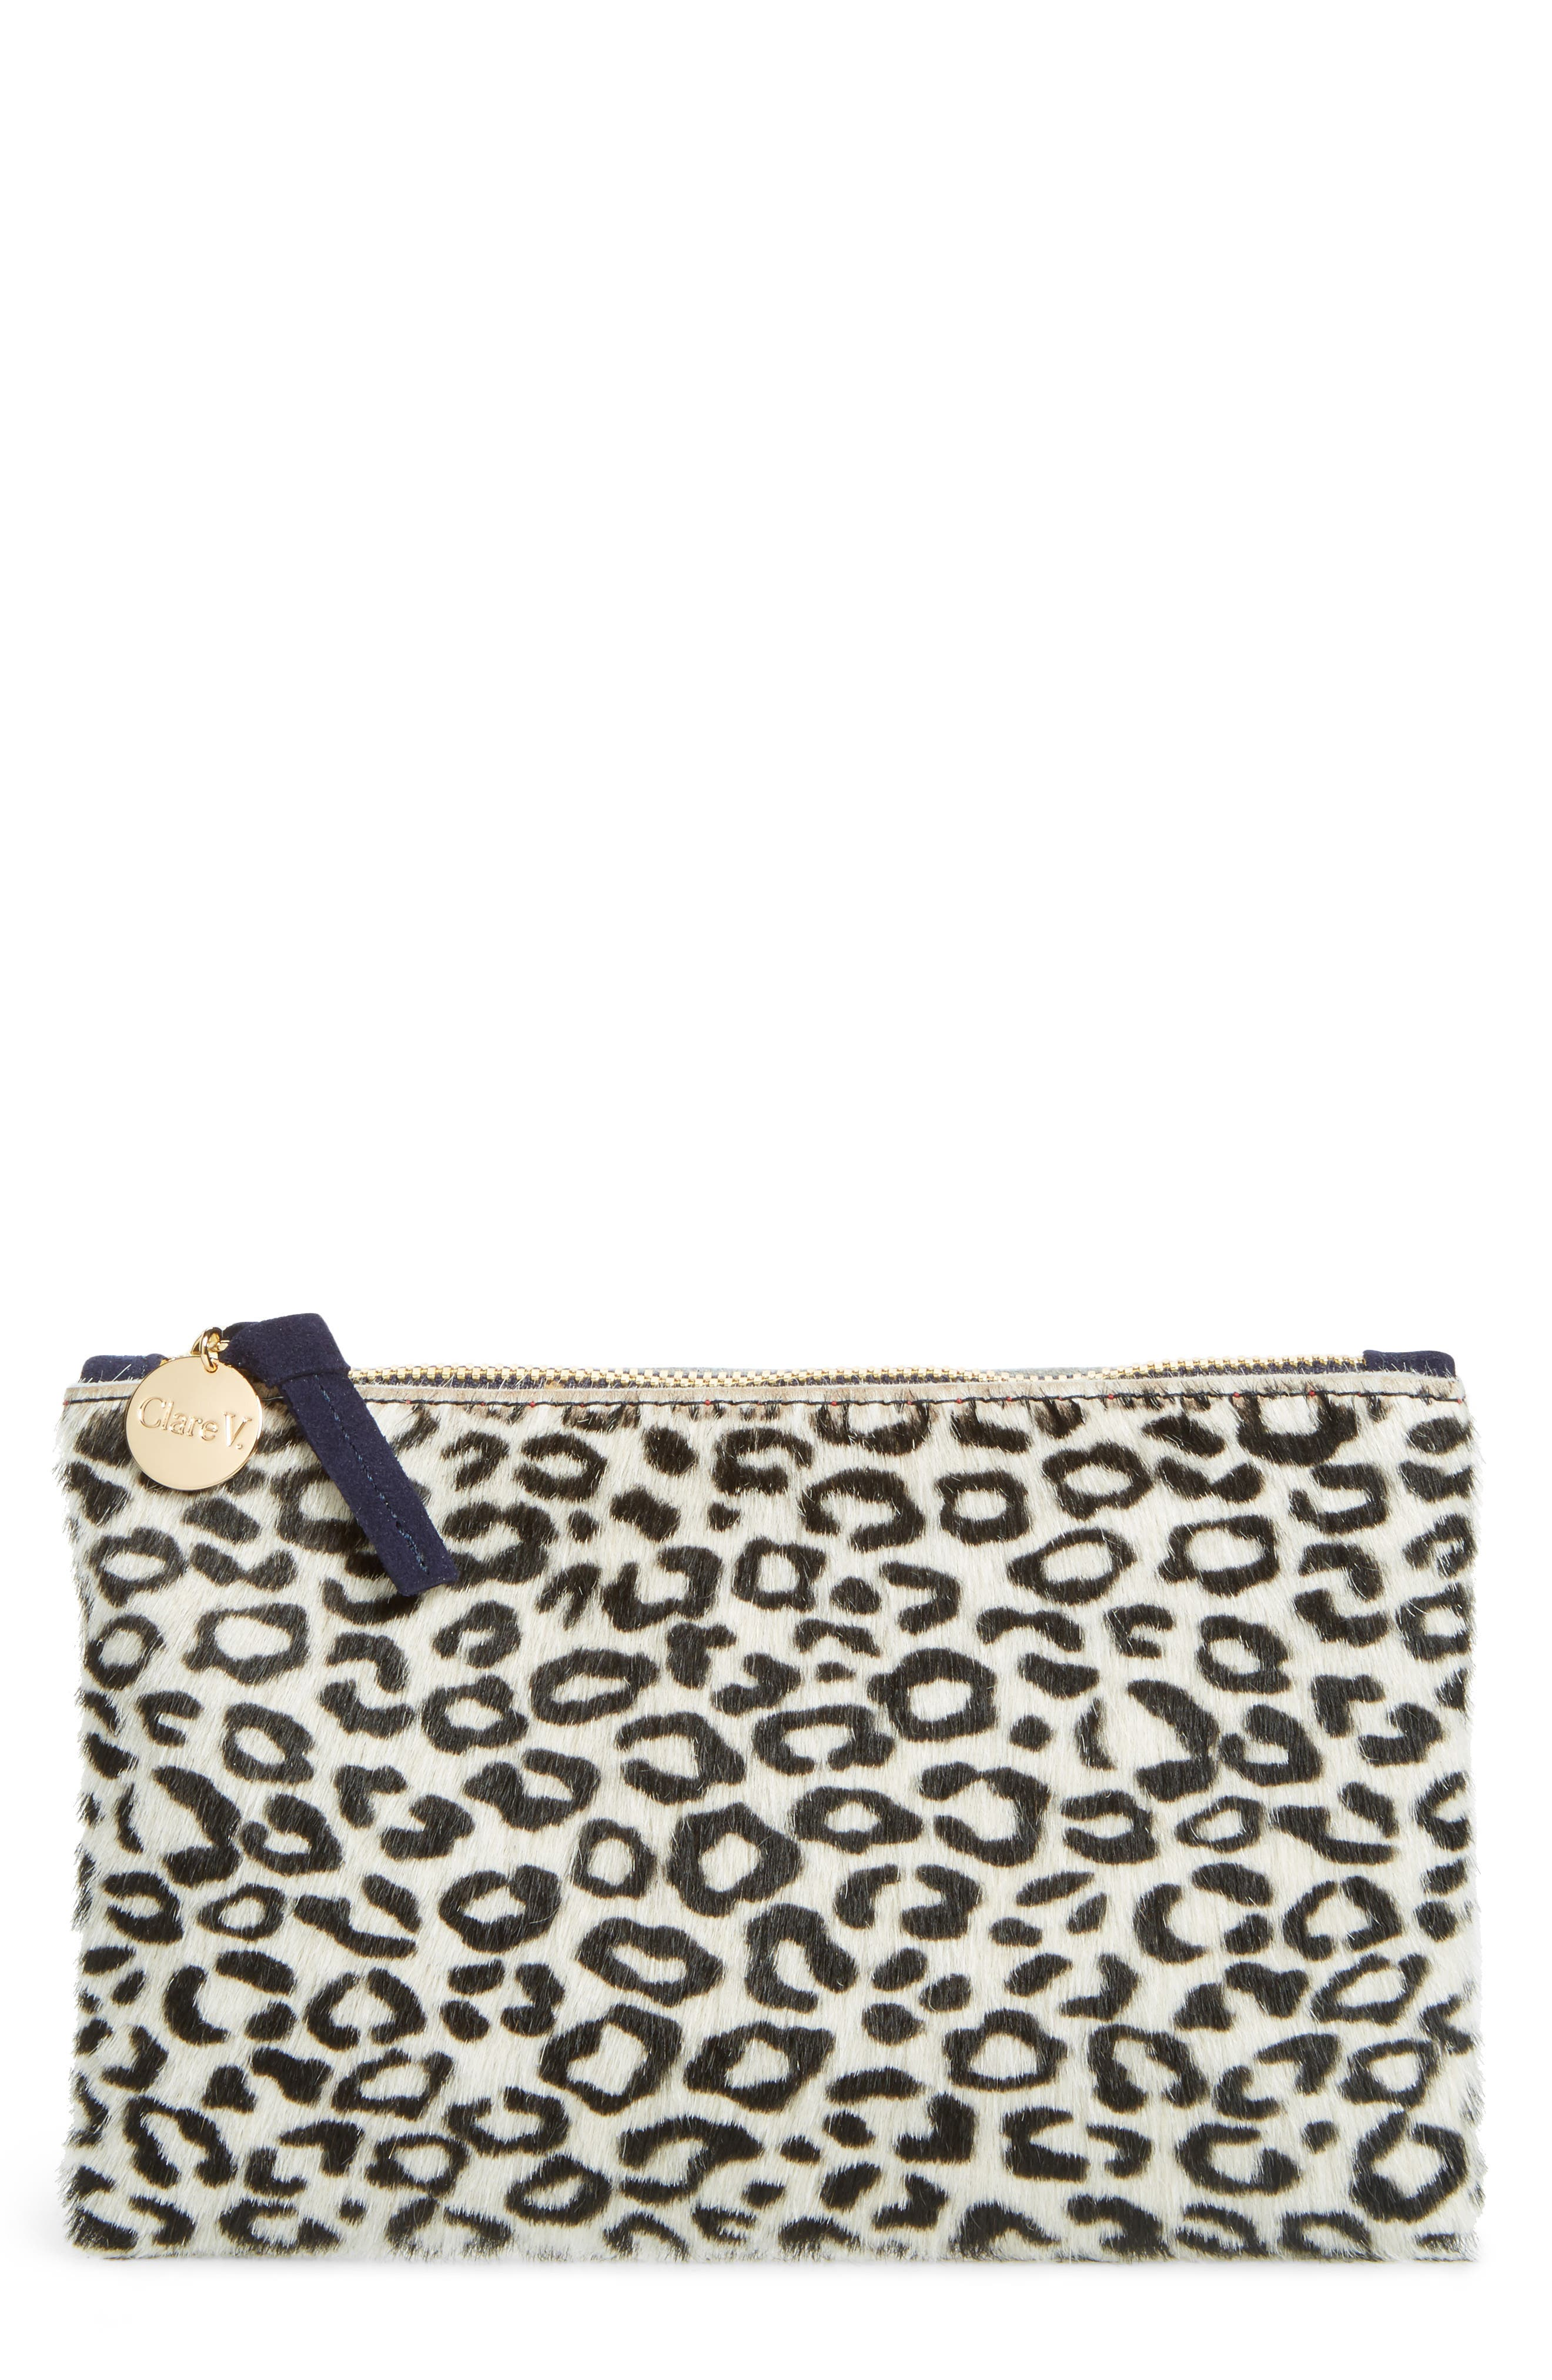 Alternate Image 1 Selected - Clare V. Ocelot Print Genuine Calf Hair Wallet Clutch